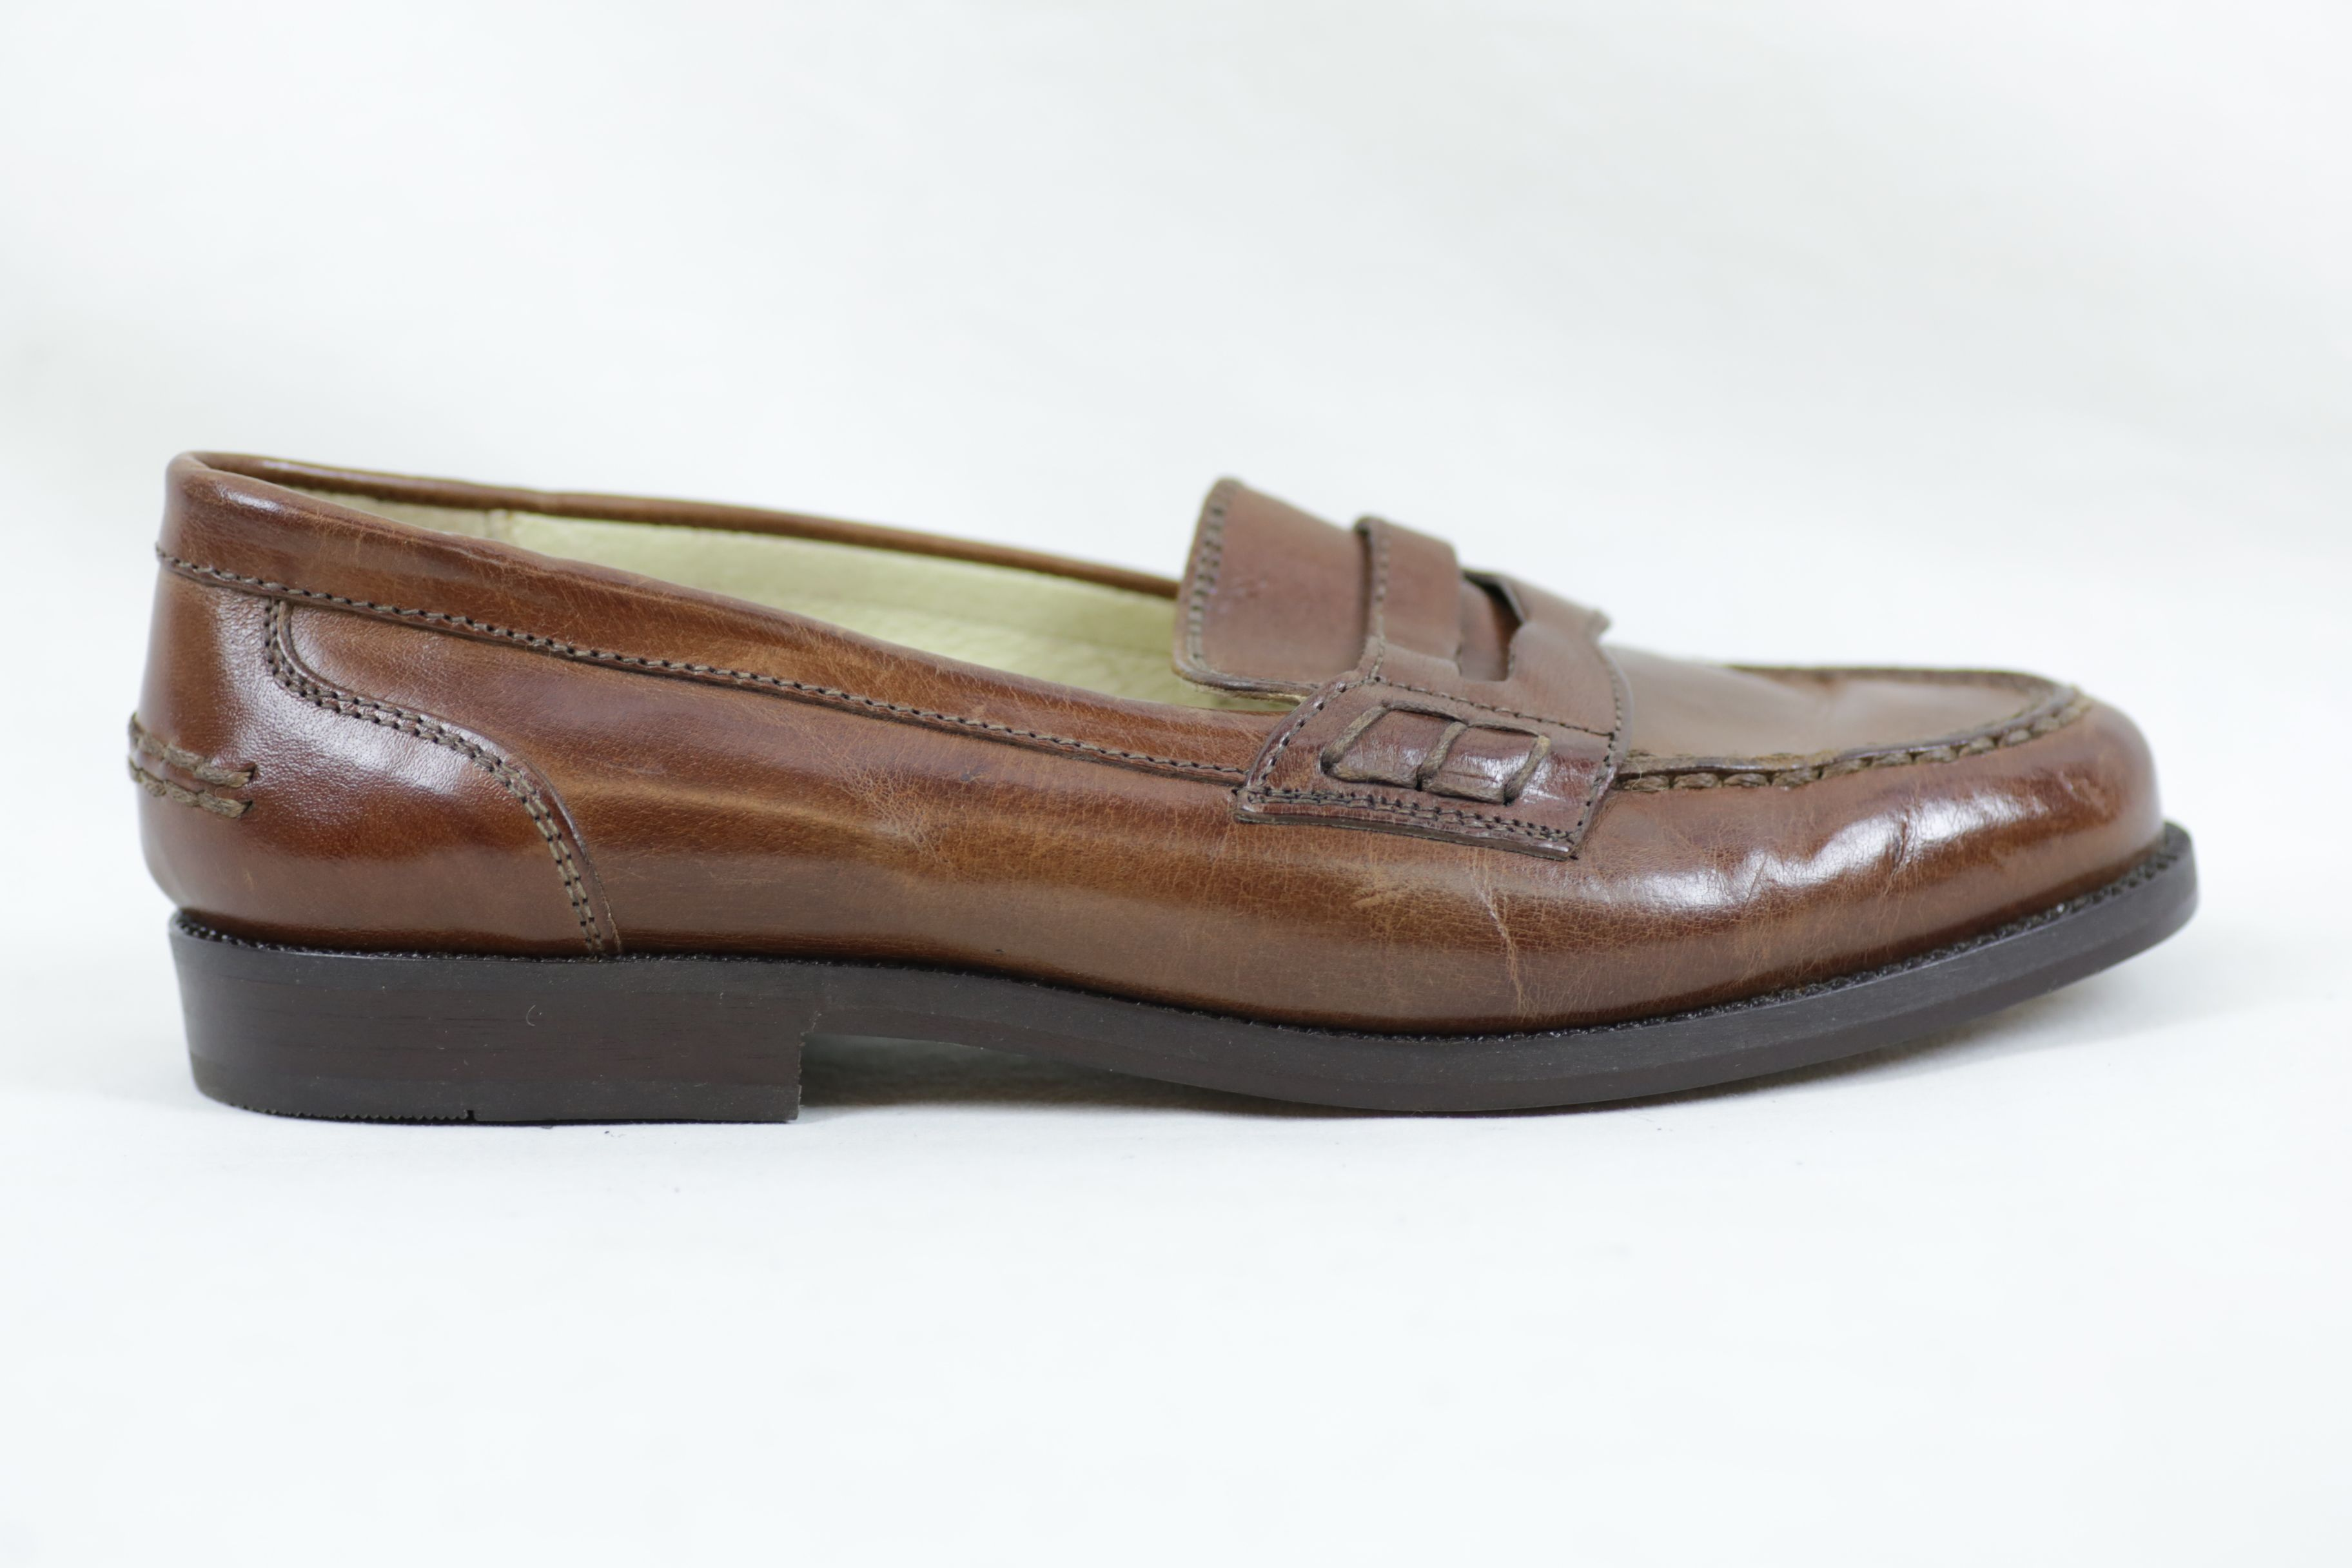 Bally Brim Classic Mid Brown Leather Shoes / Loafers - Size EU 36.5 UK 3.5 10